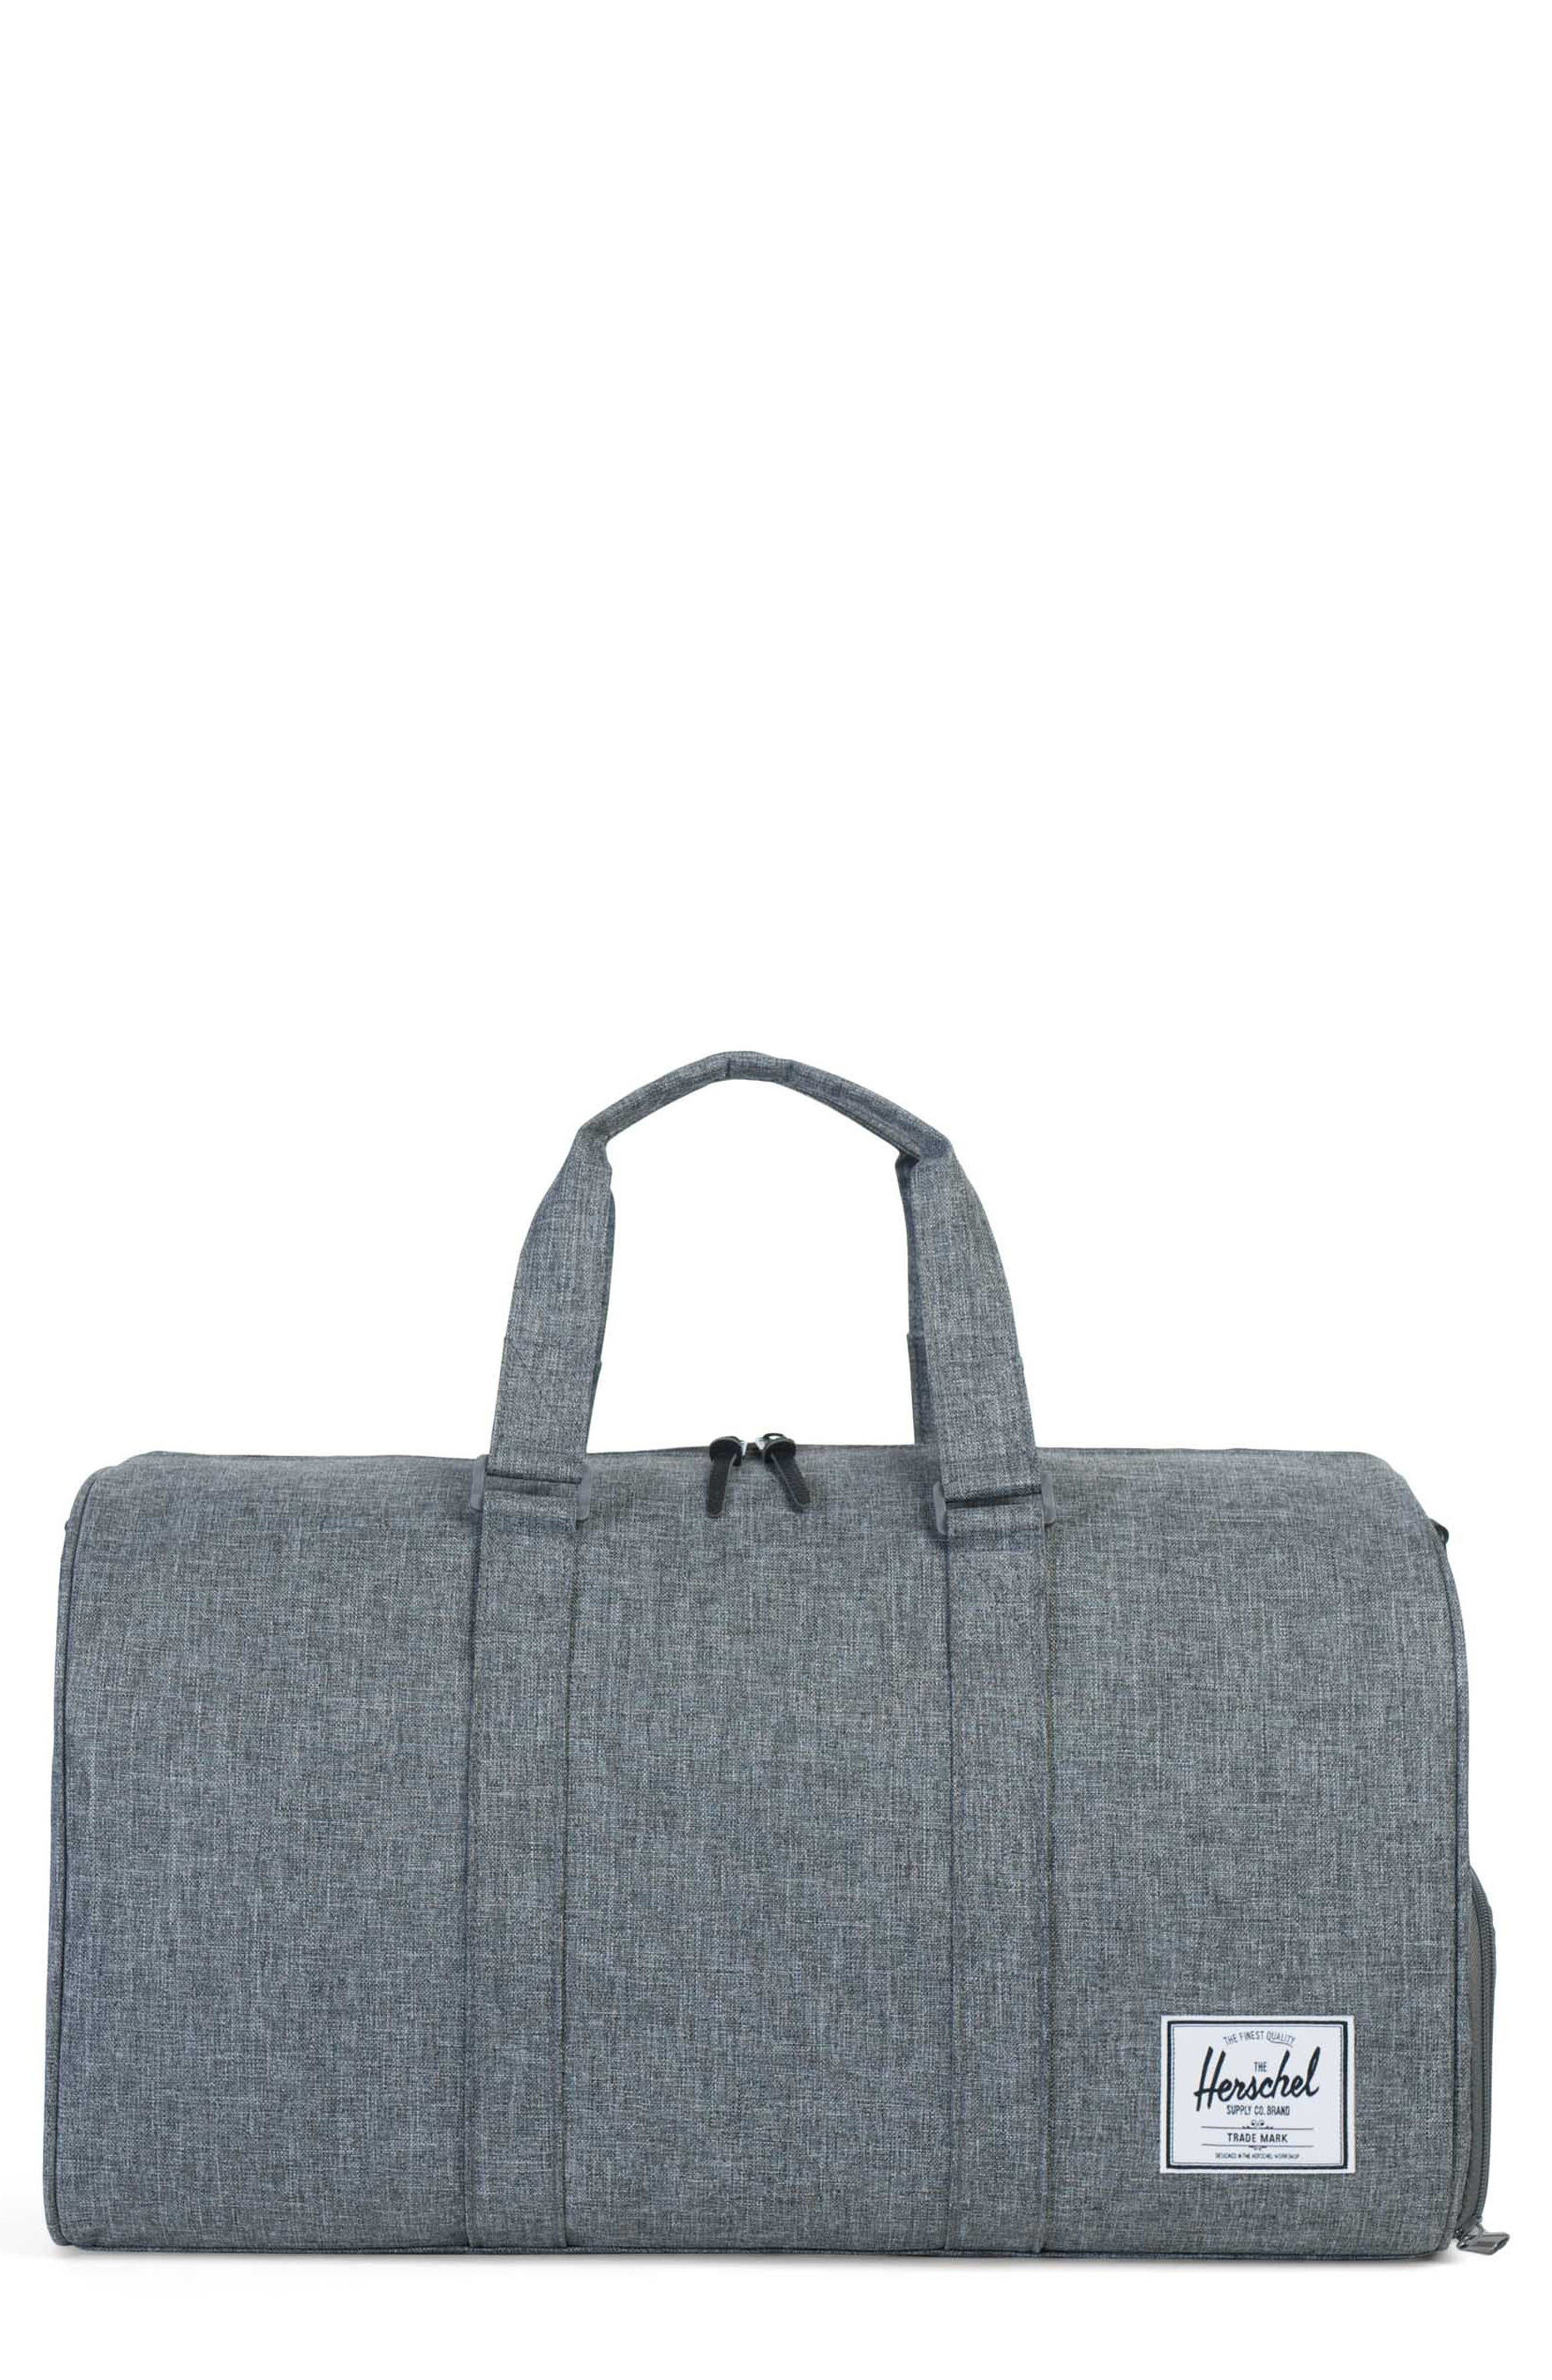 Main Image - Herschel Supply Co. Novel Duffel Bag